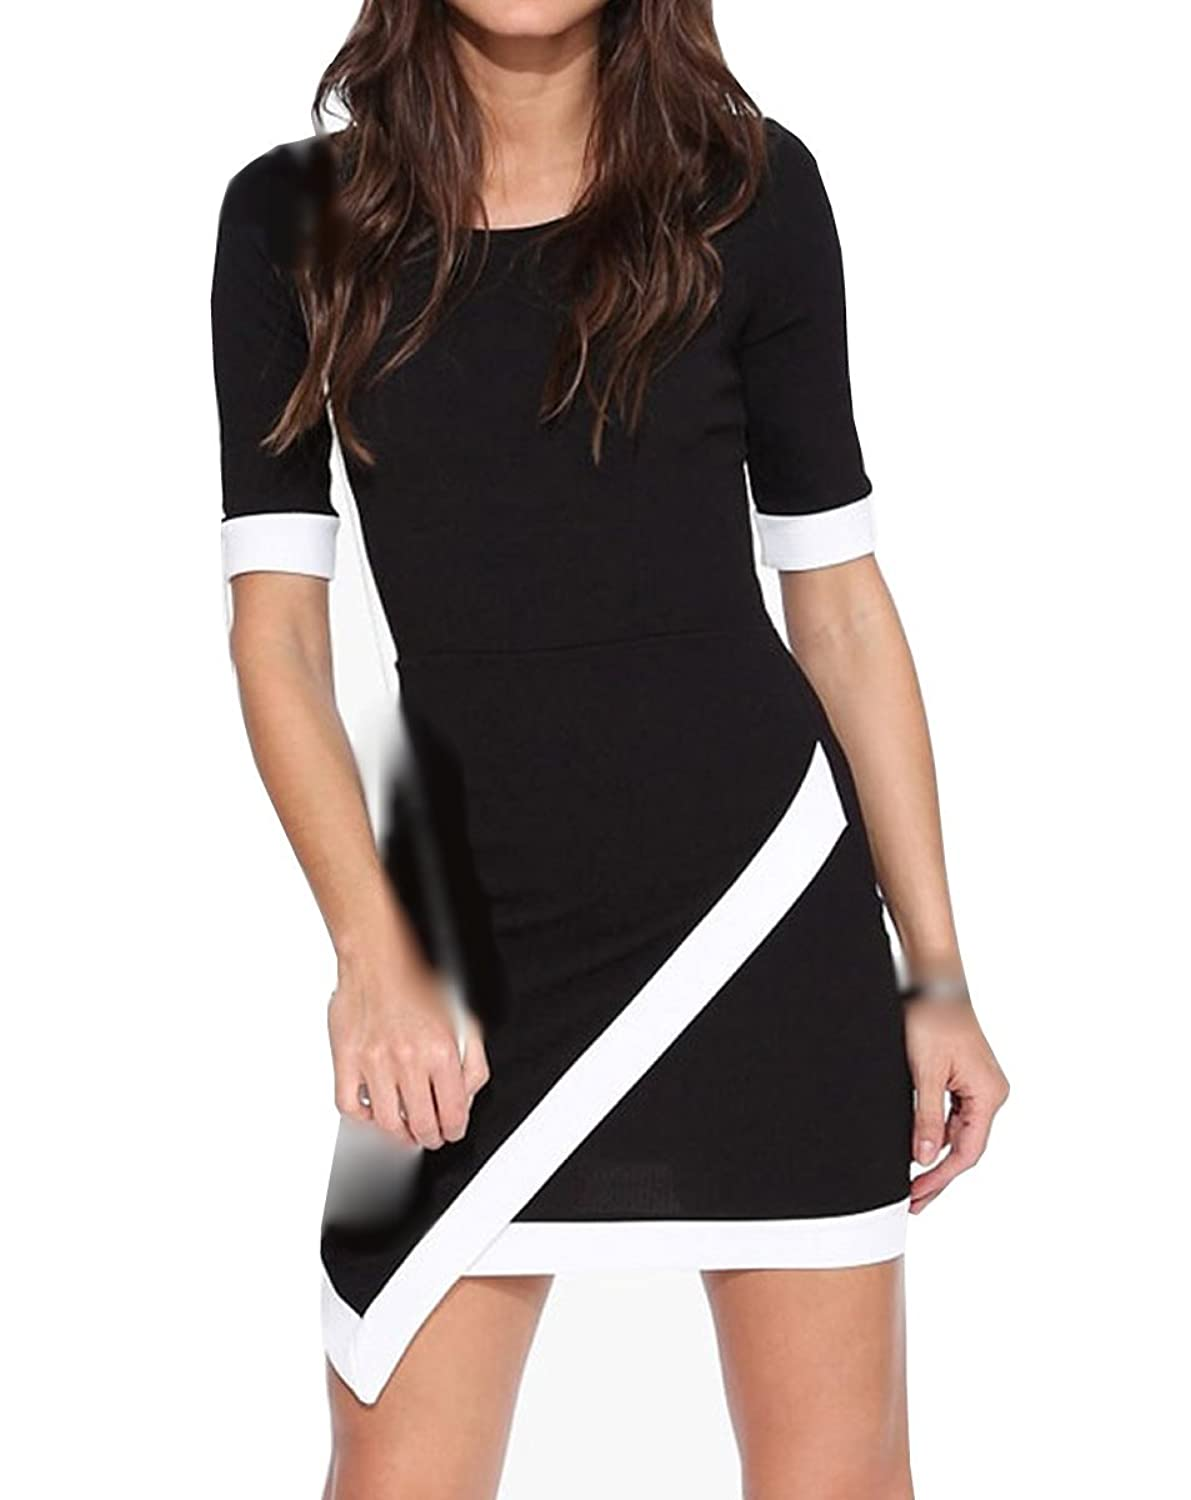 E-Girl FOB21990 women Bodycon Dress